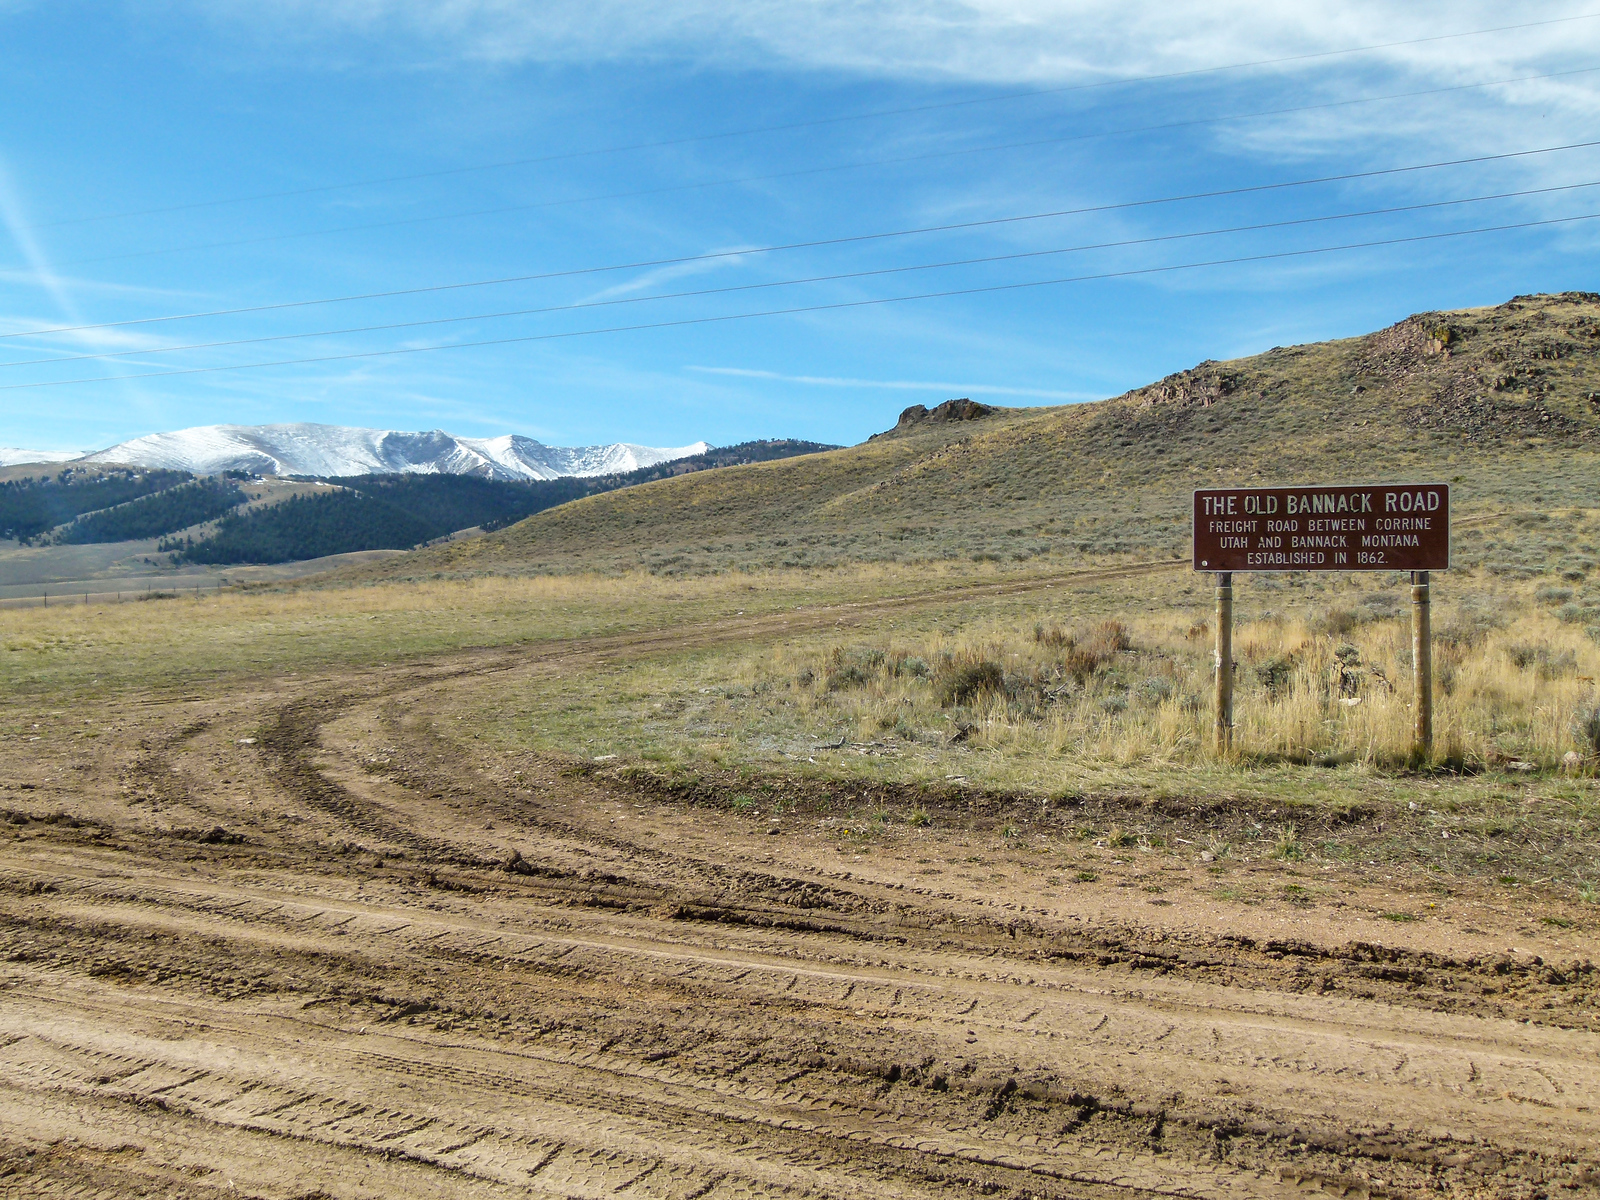 A sign points to Old Bannack Road on the Big Sheep Back Country Byway in #Montana. #roadtrip #boomertravel